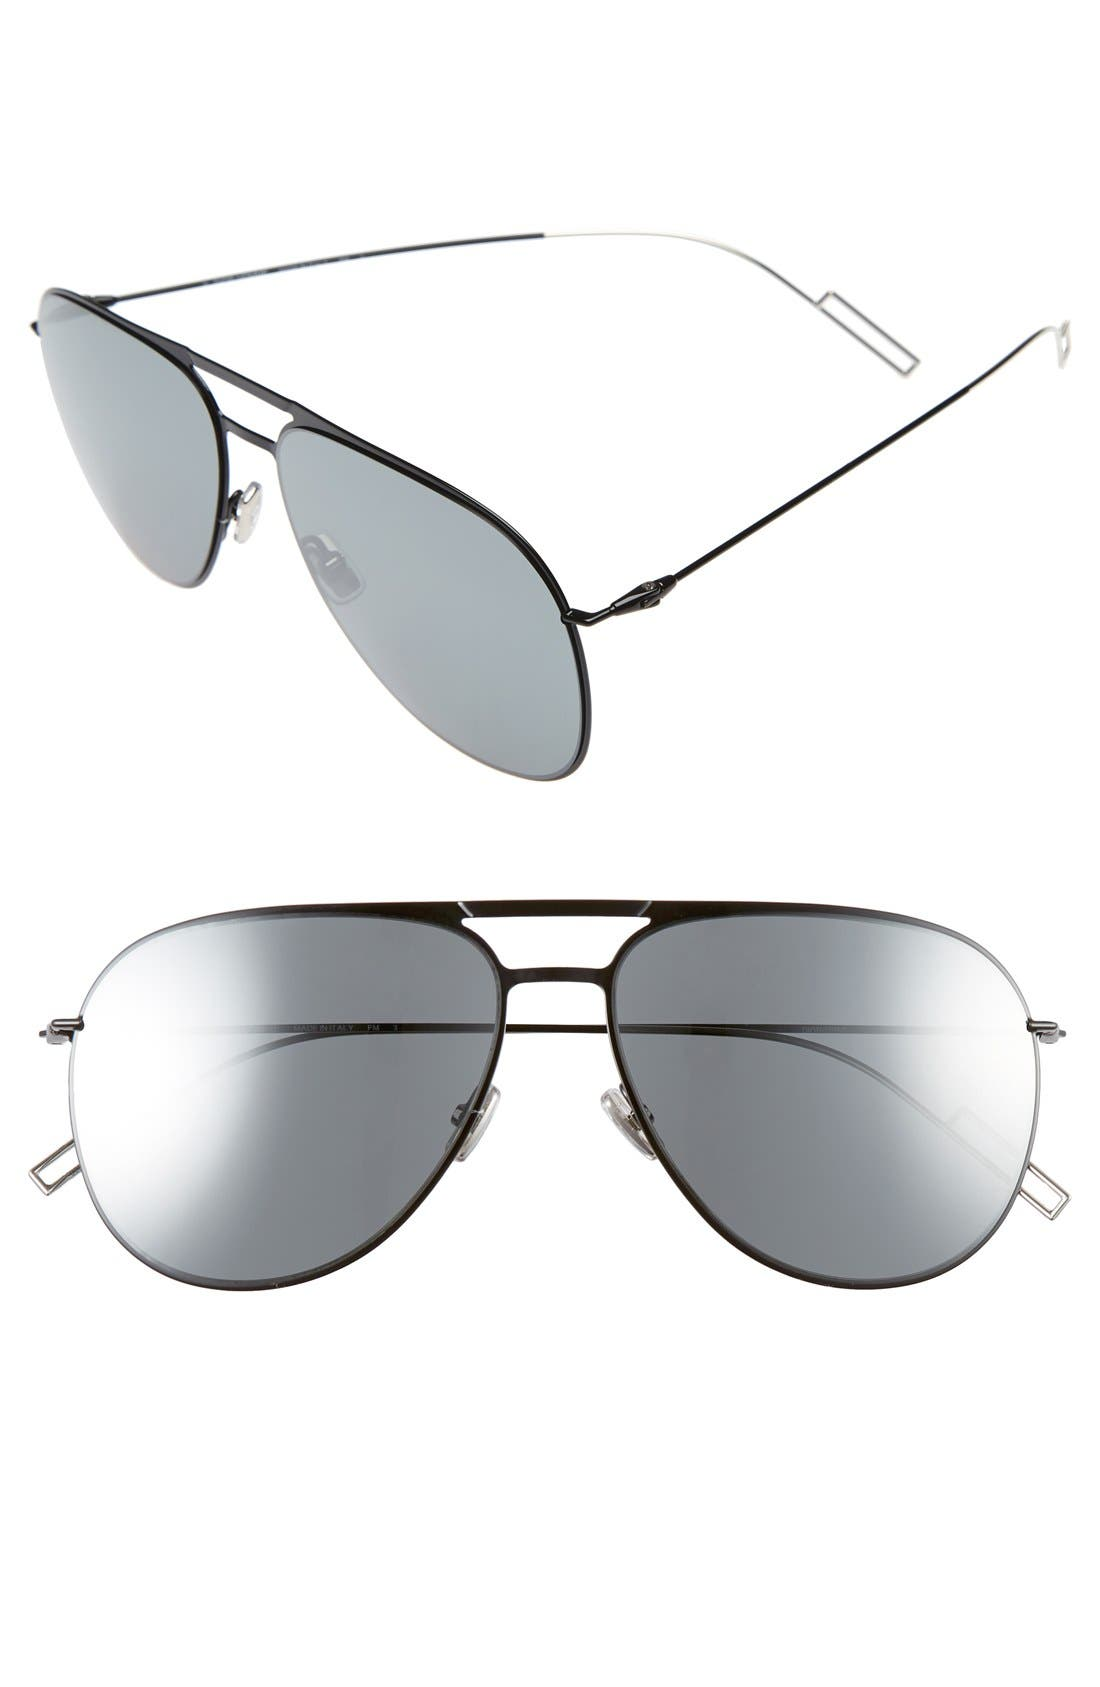 Alternate Image 1 Selected - Dior Homme 59mm Aviator Sunglasses